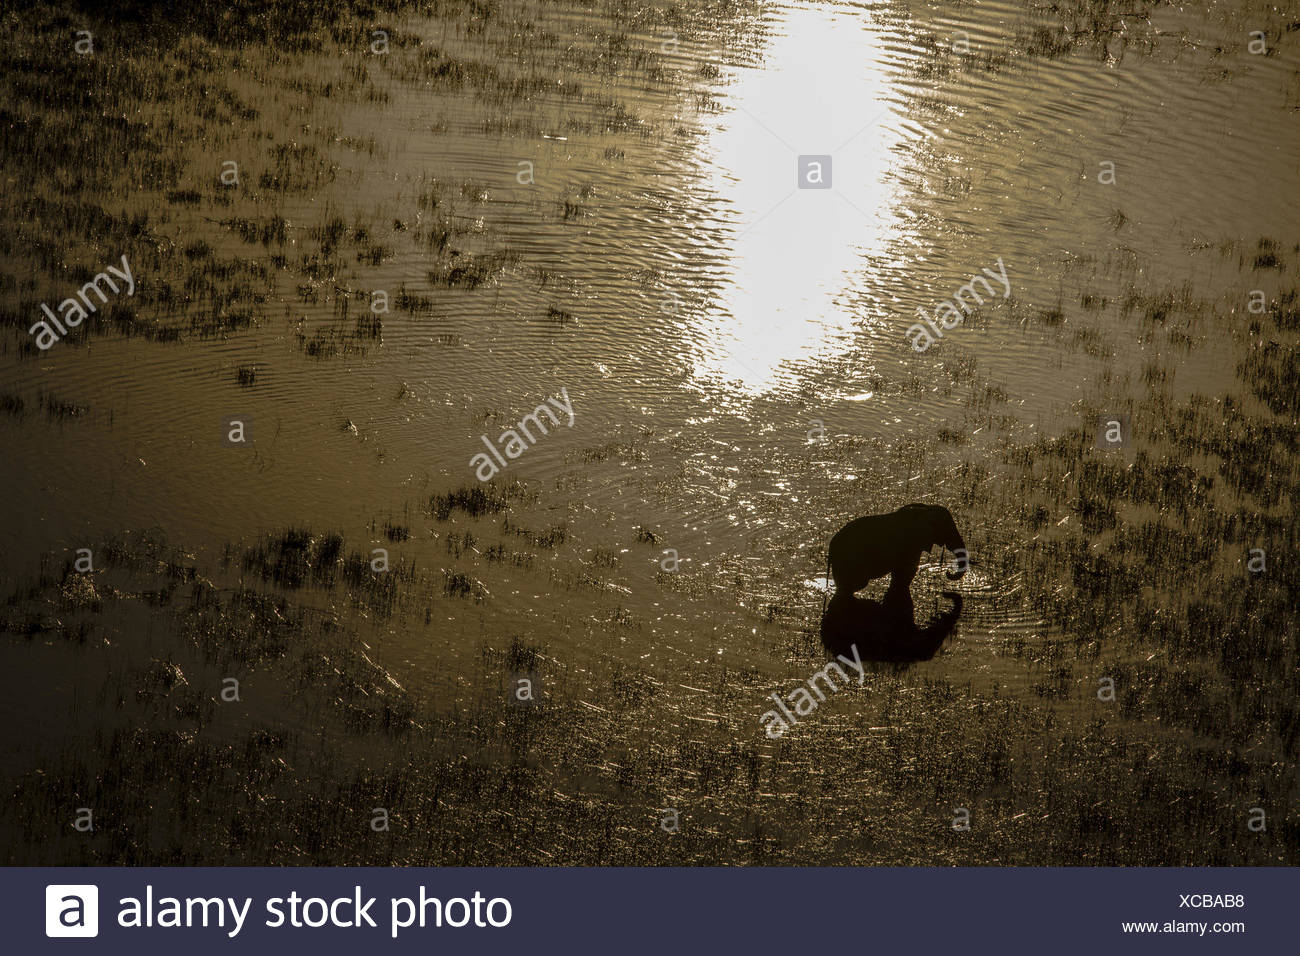 An elephant, Loxodonta africana, drinking in the spillway as the sun sets. - Stock Image